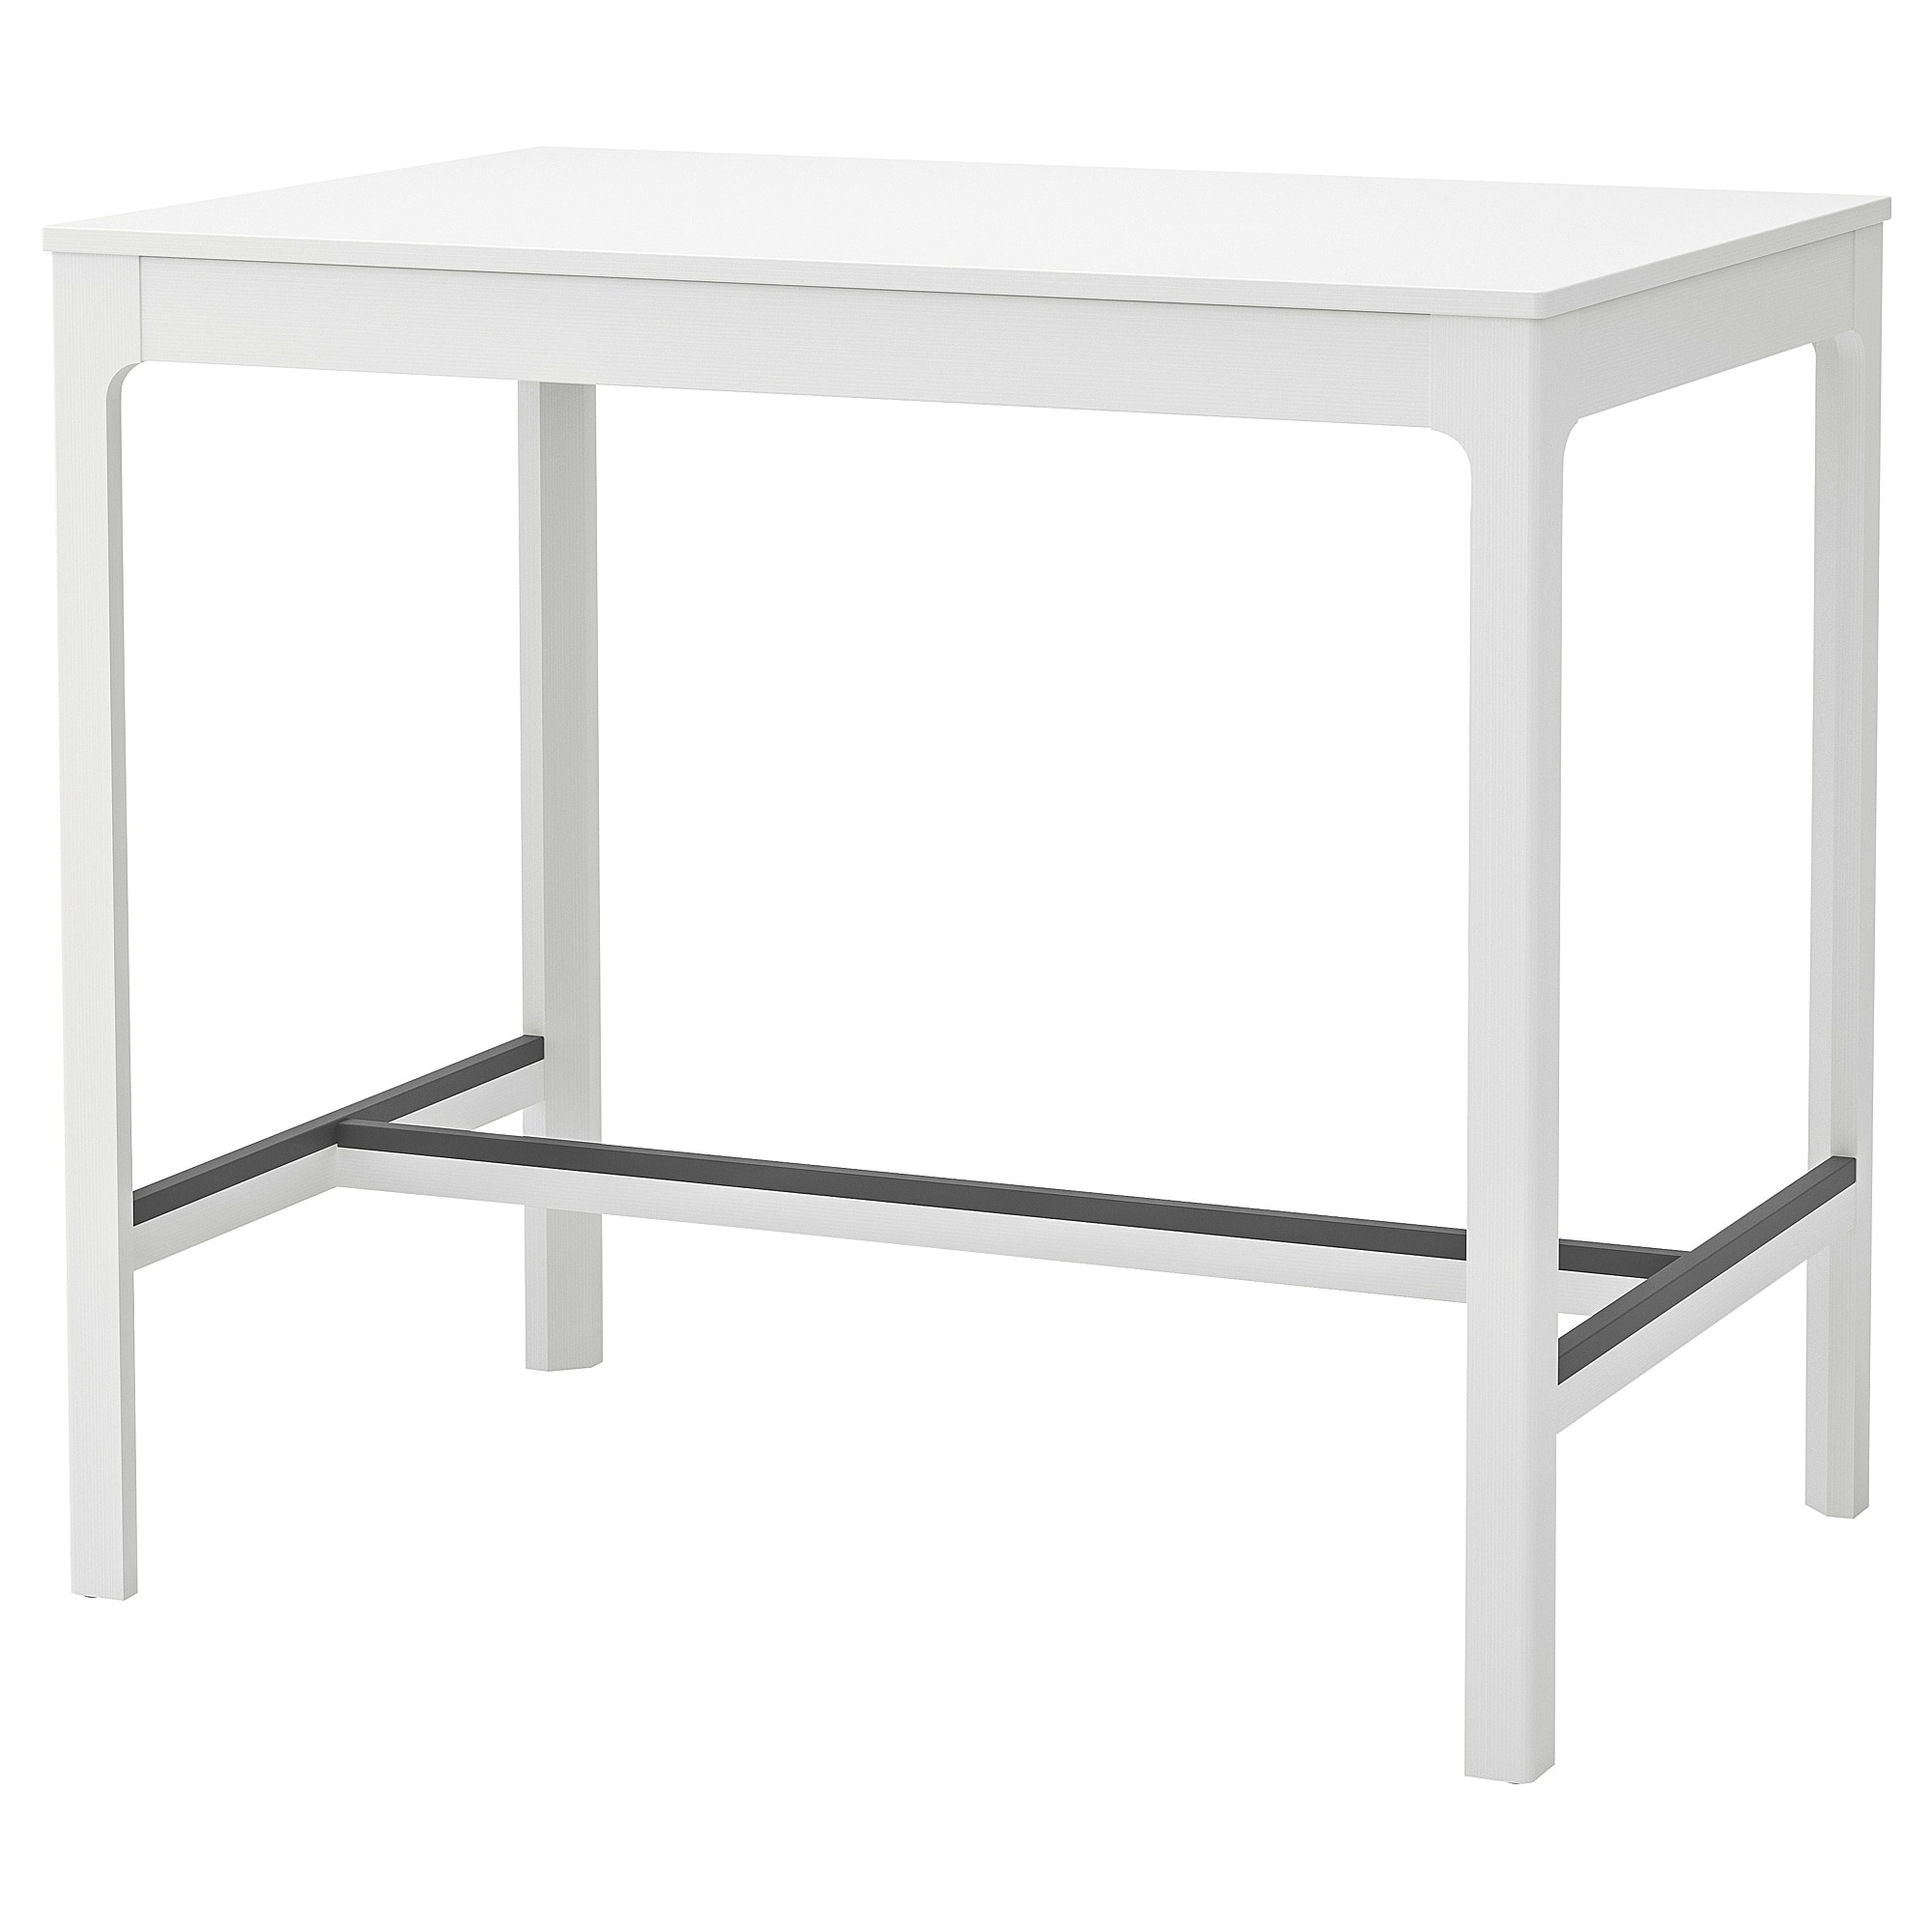 Ekedalen Bar Table White 47 1 4x31 1 2 White Bar Table Bar Table Ikea Ikea Bar